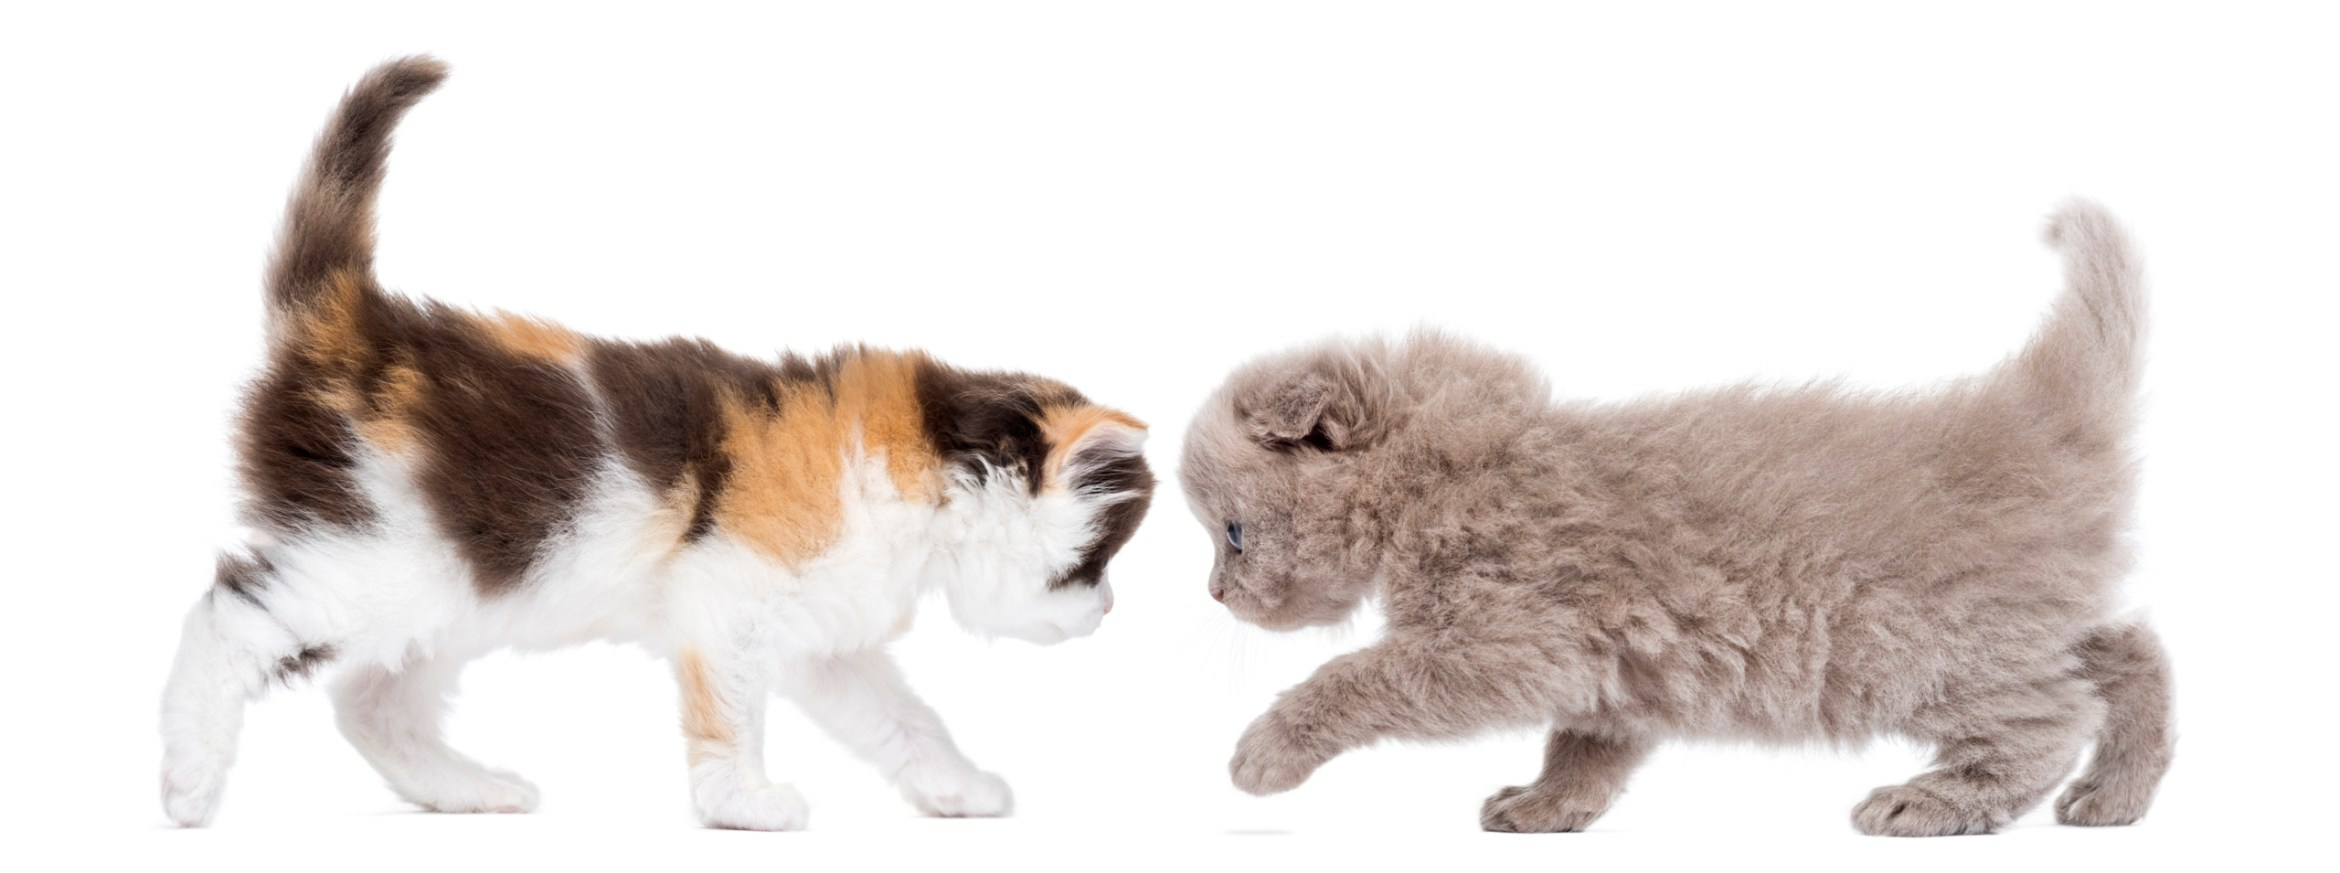 kittens facing each other